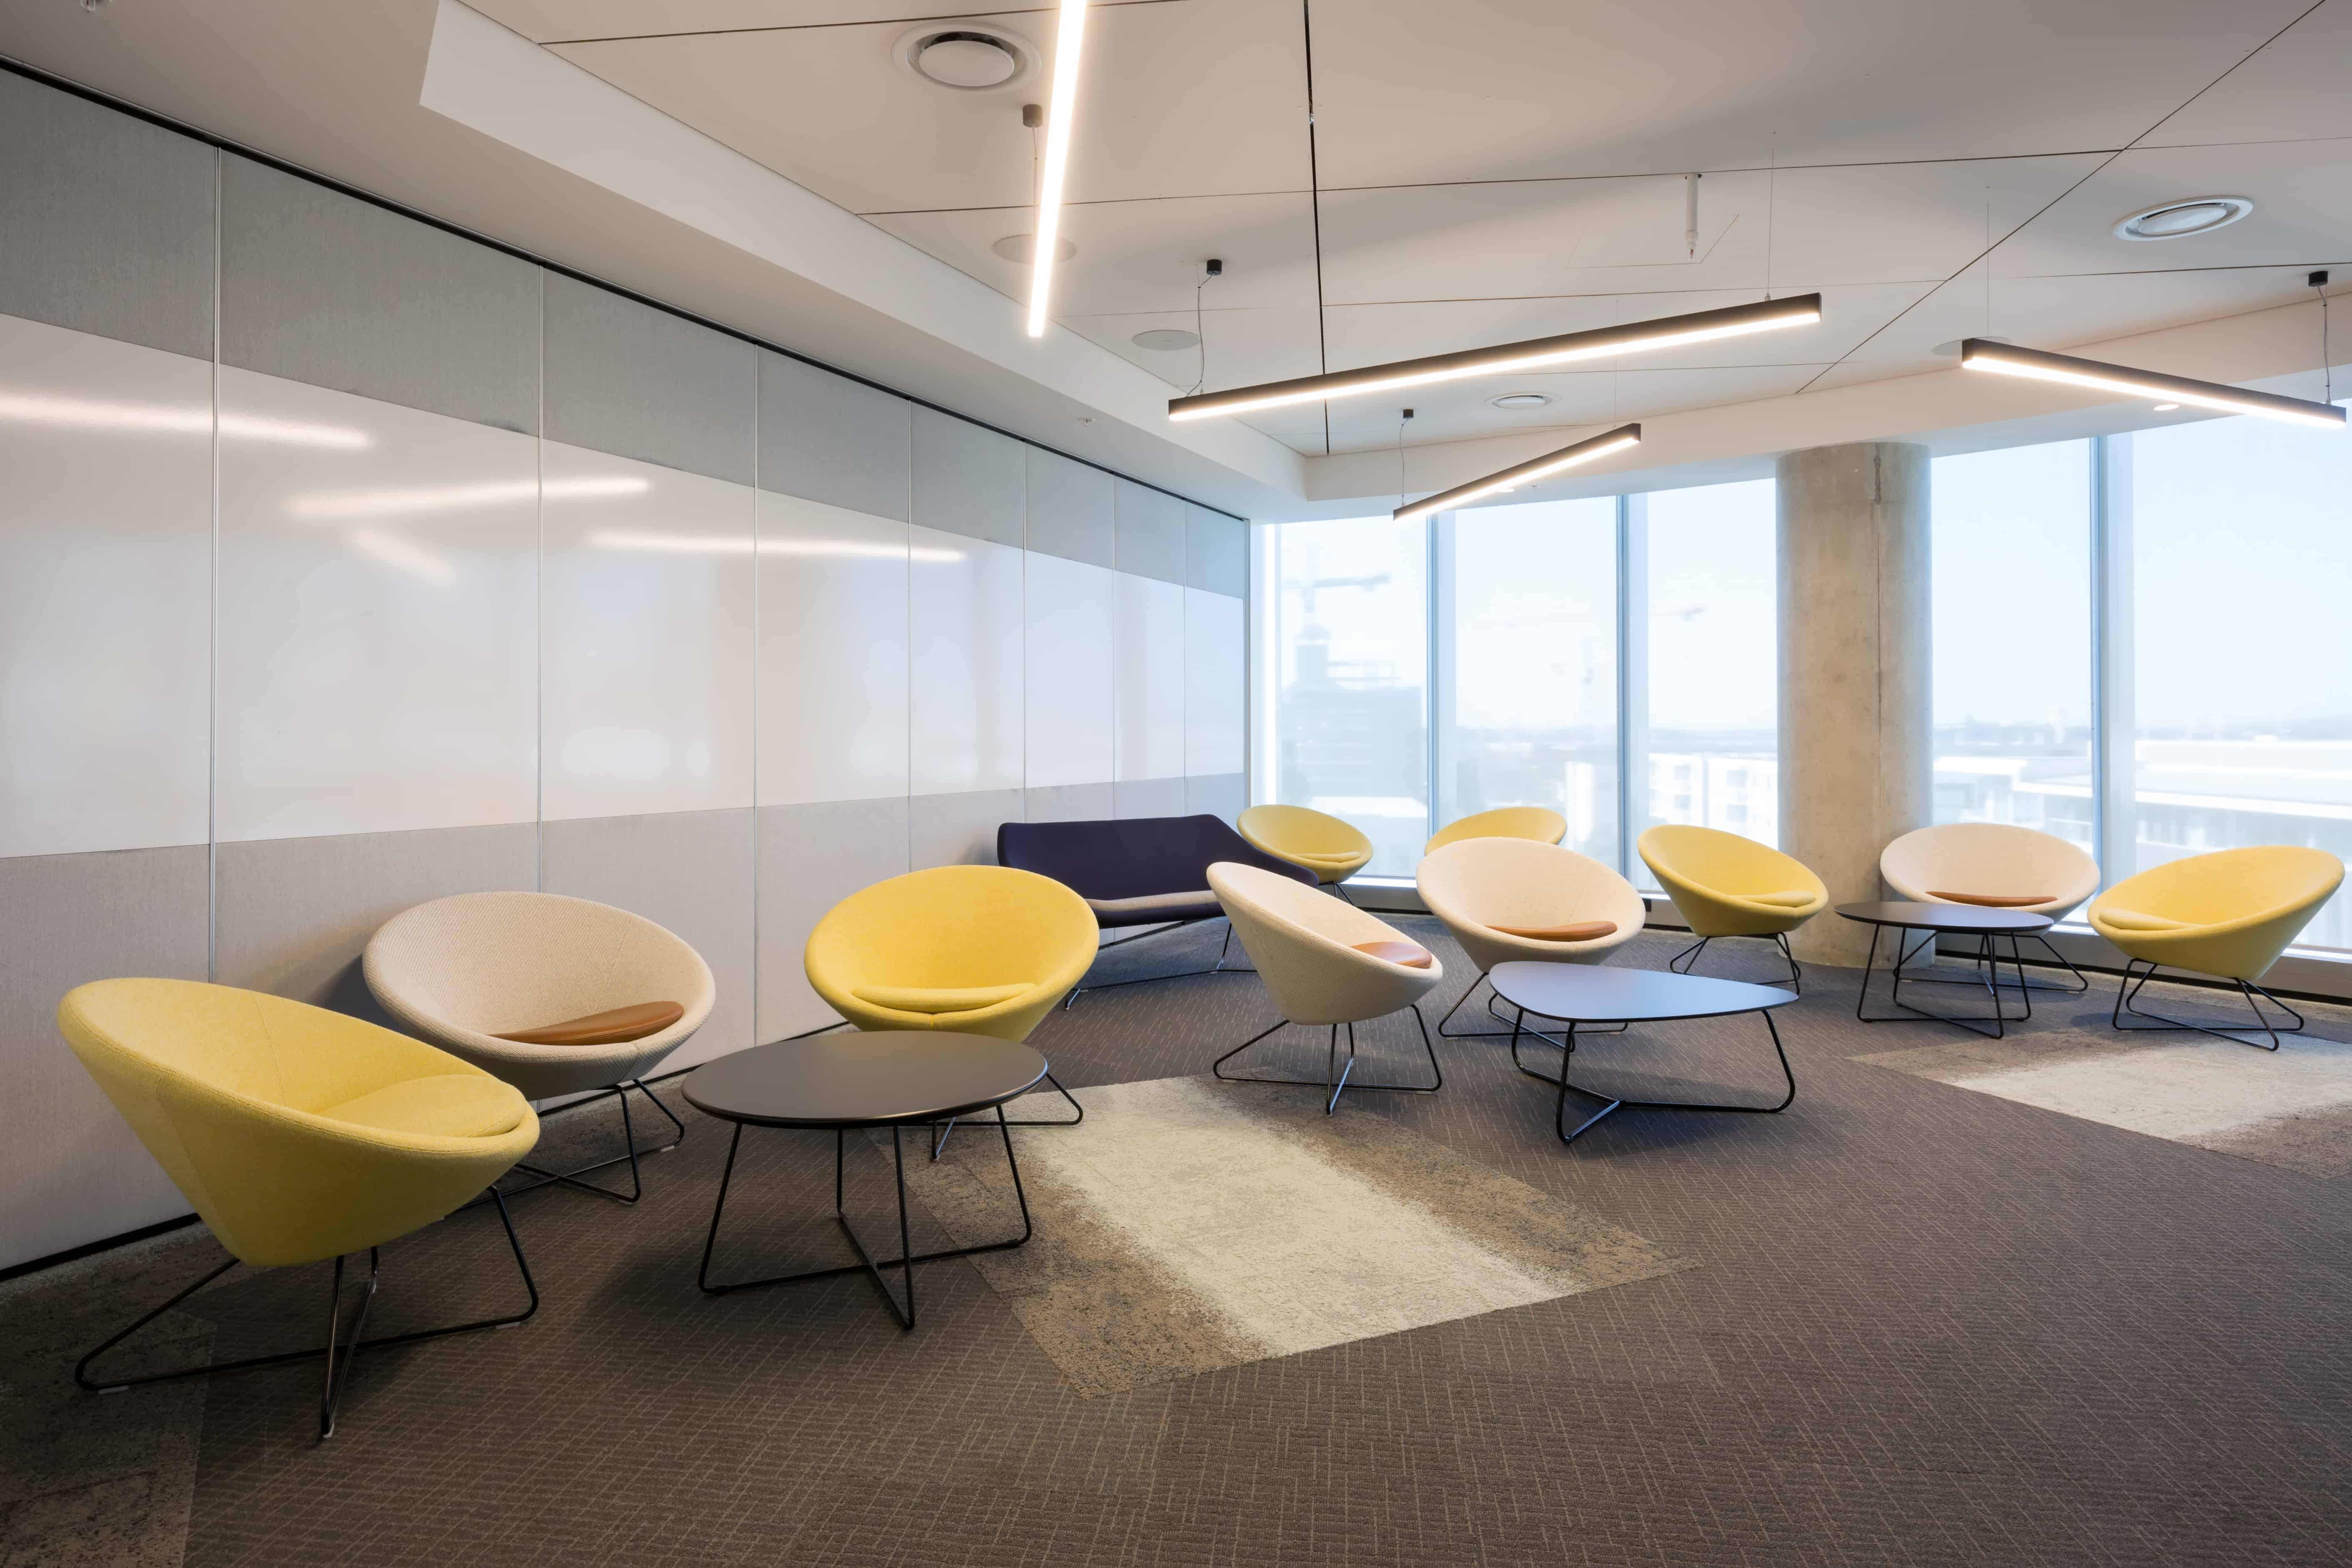 IBM office in Auckland workplace open meeting space with low tables and chairs